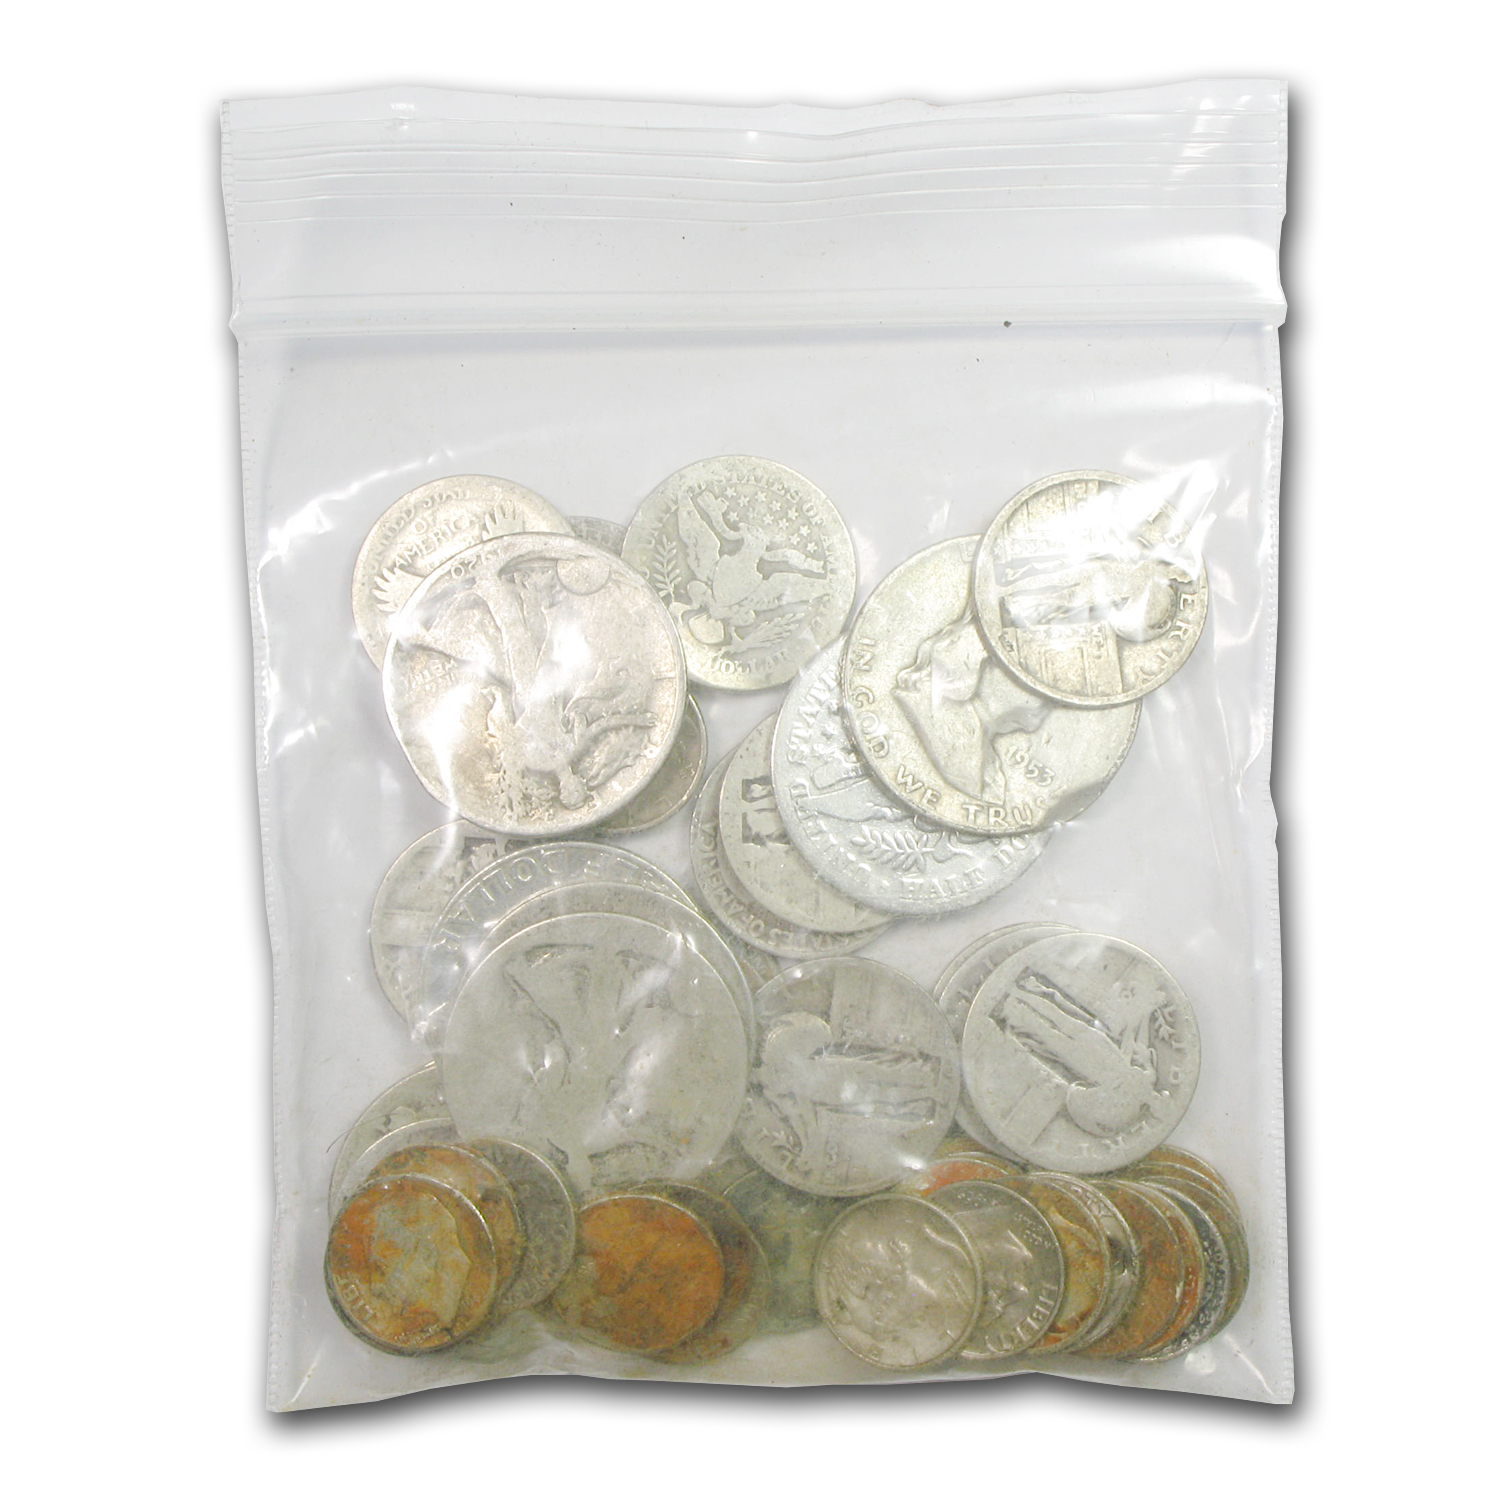 $10 Face-Value lot of 90% Silver Coins (Cull)